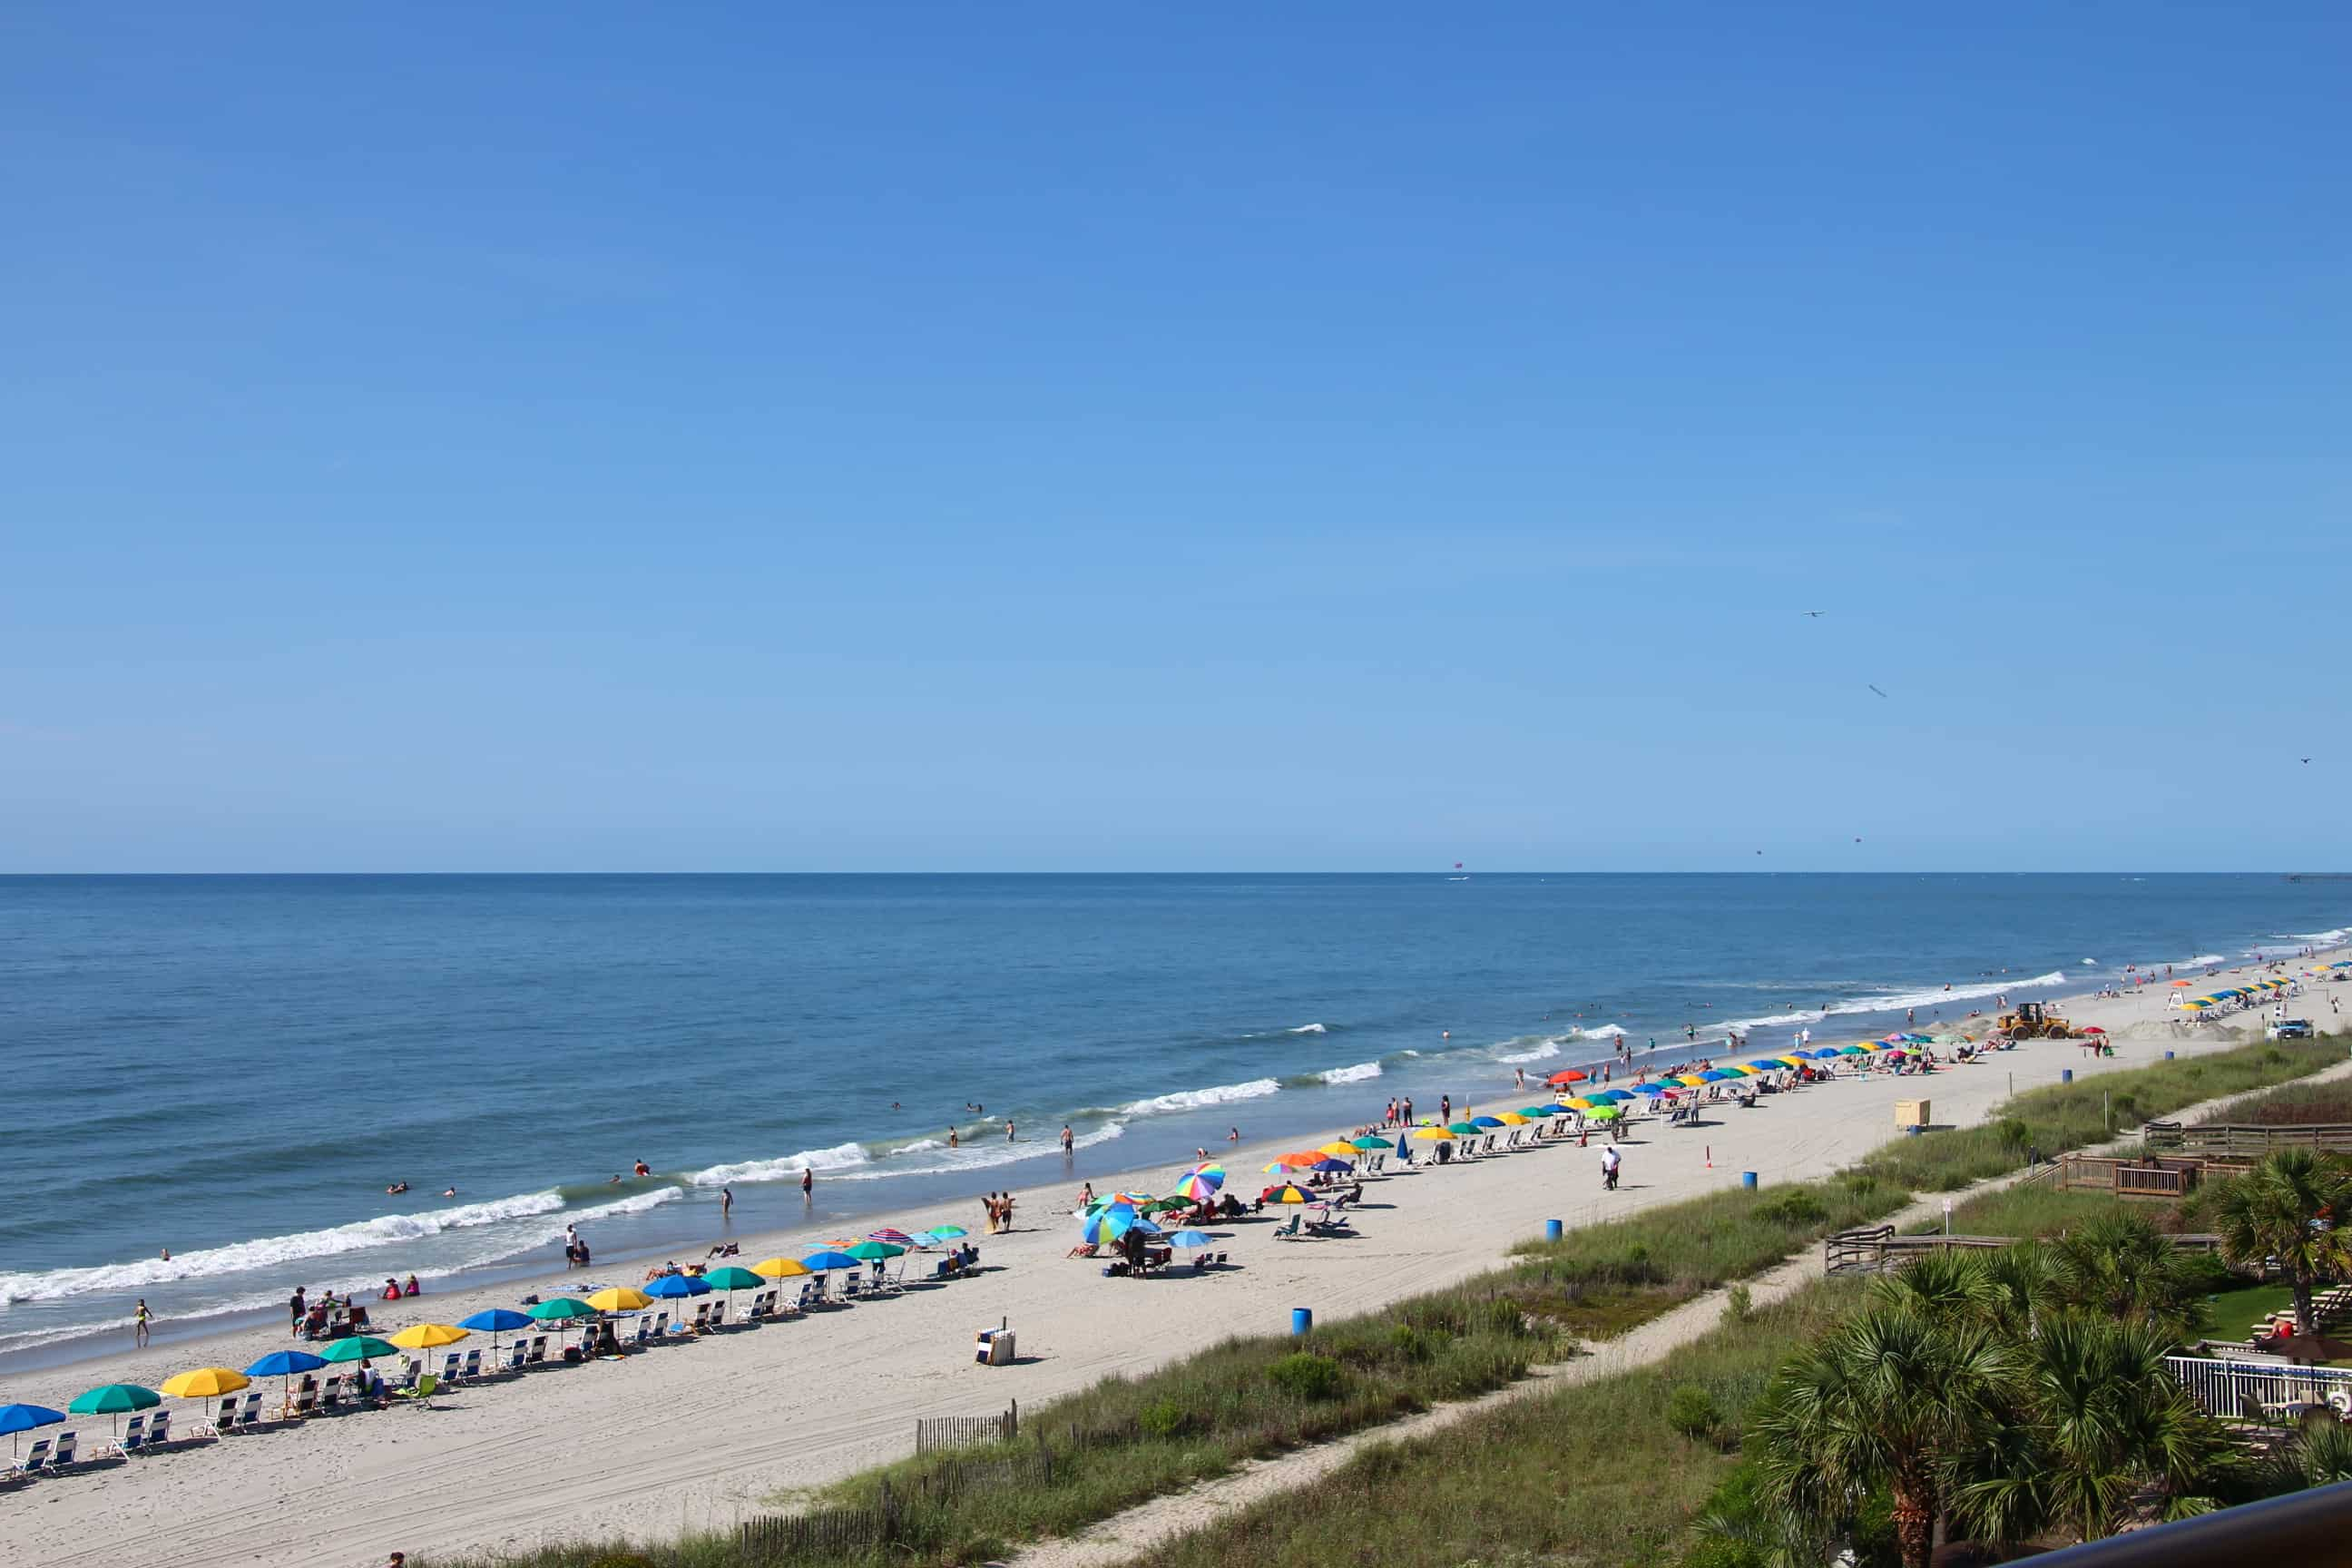 Myrtle Beach - Best Things to Do in South Carolina